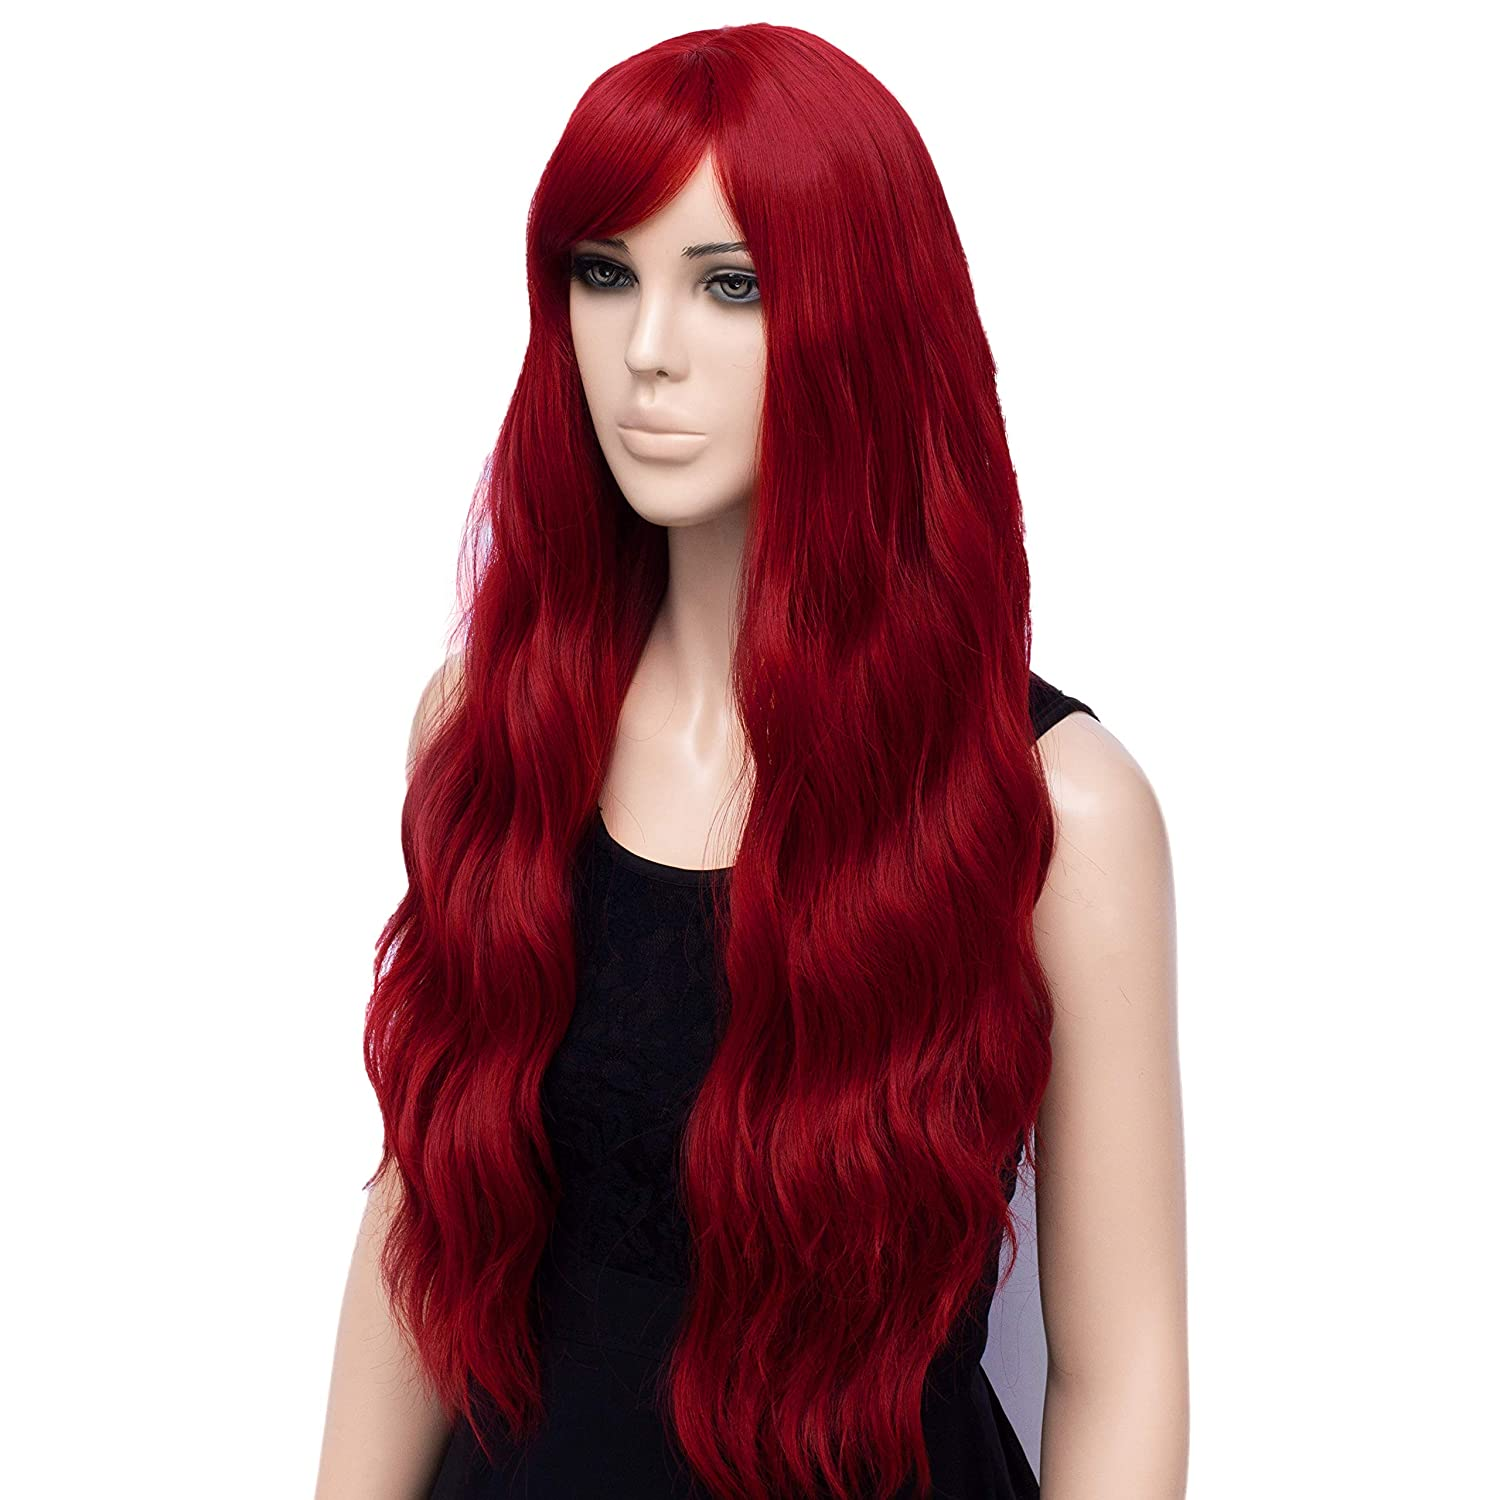 Women's Red Cosplay Wig, Long Wavy Heat Resistant Fiber Wigs (Red)